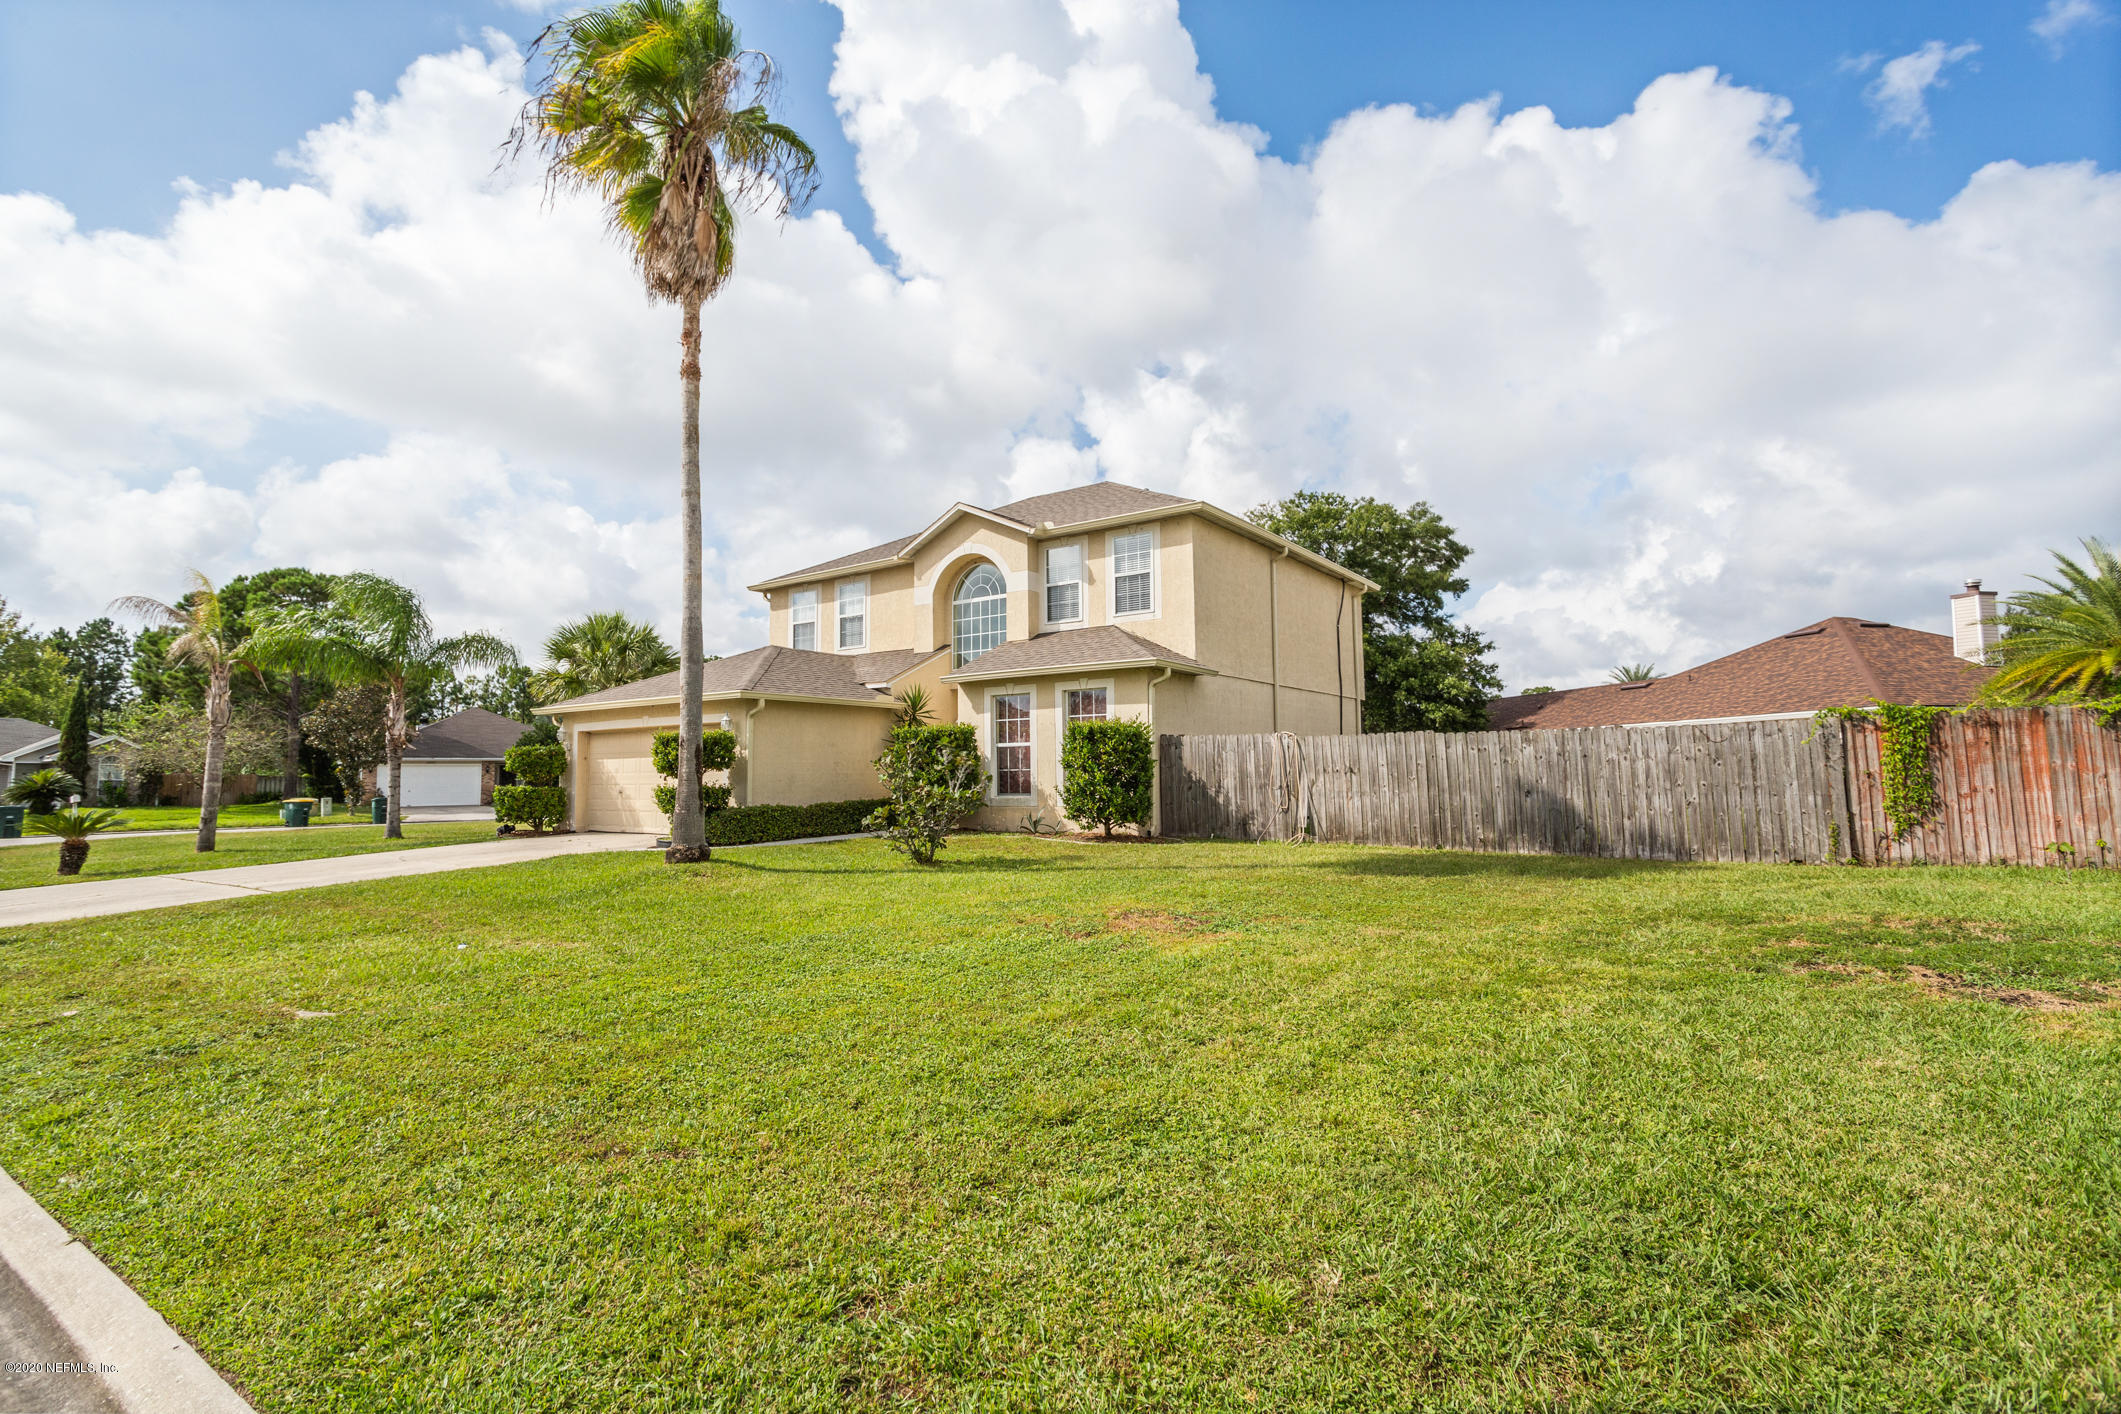 11093 LORD TAYLOR DR JACKSONVILLE - 2